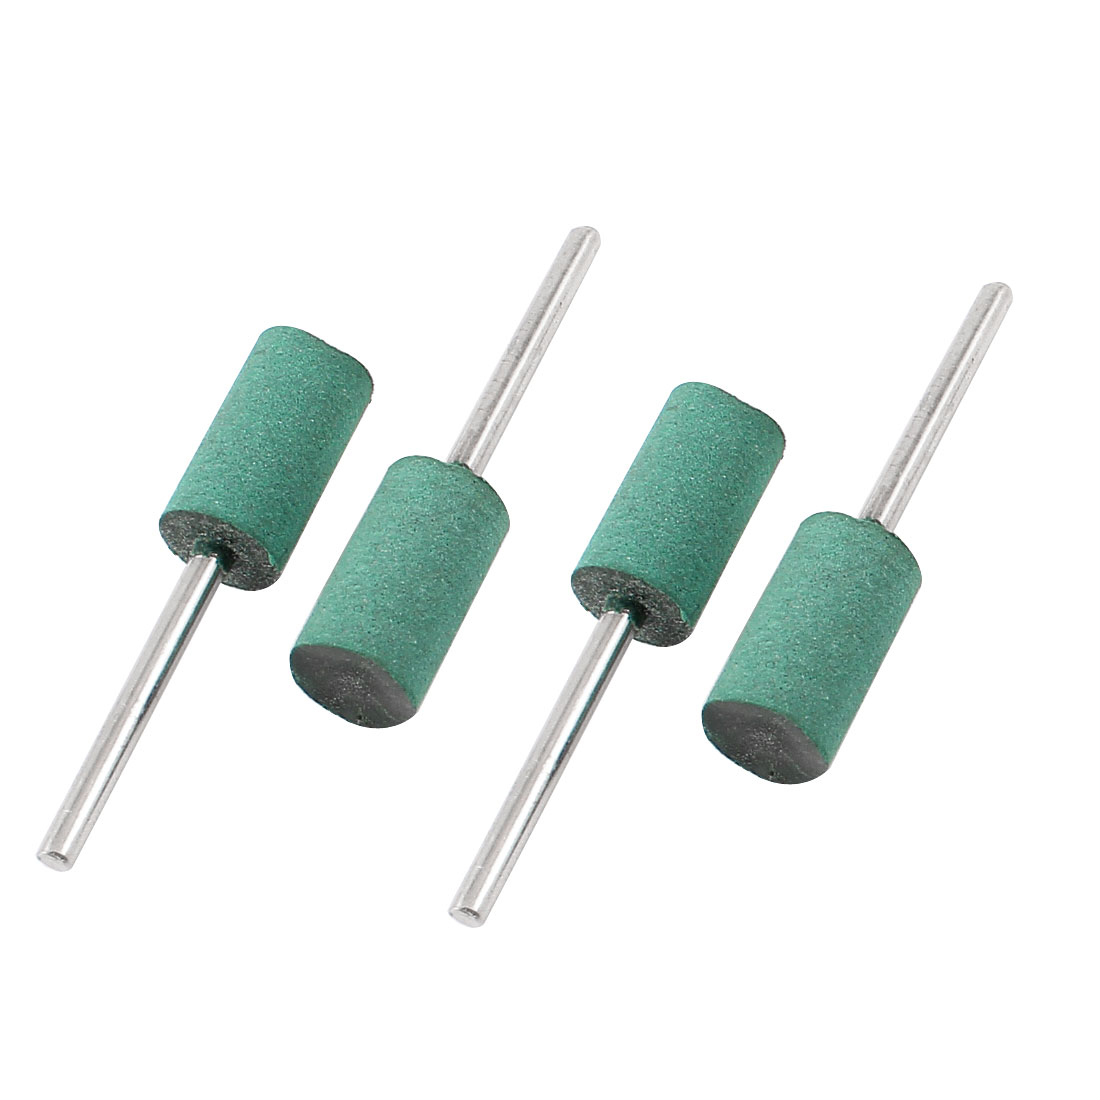 4 Pcs 10mm x 19mm Cylindrical Shape 3mm Shank Abrasive Rubber Mounted Point